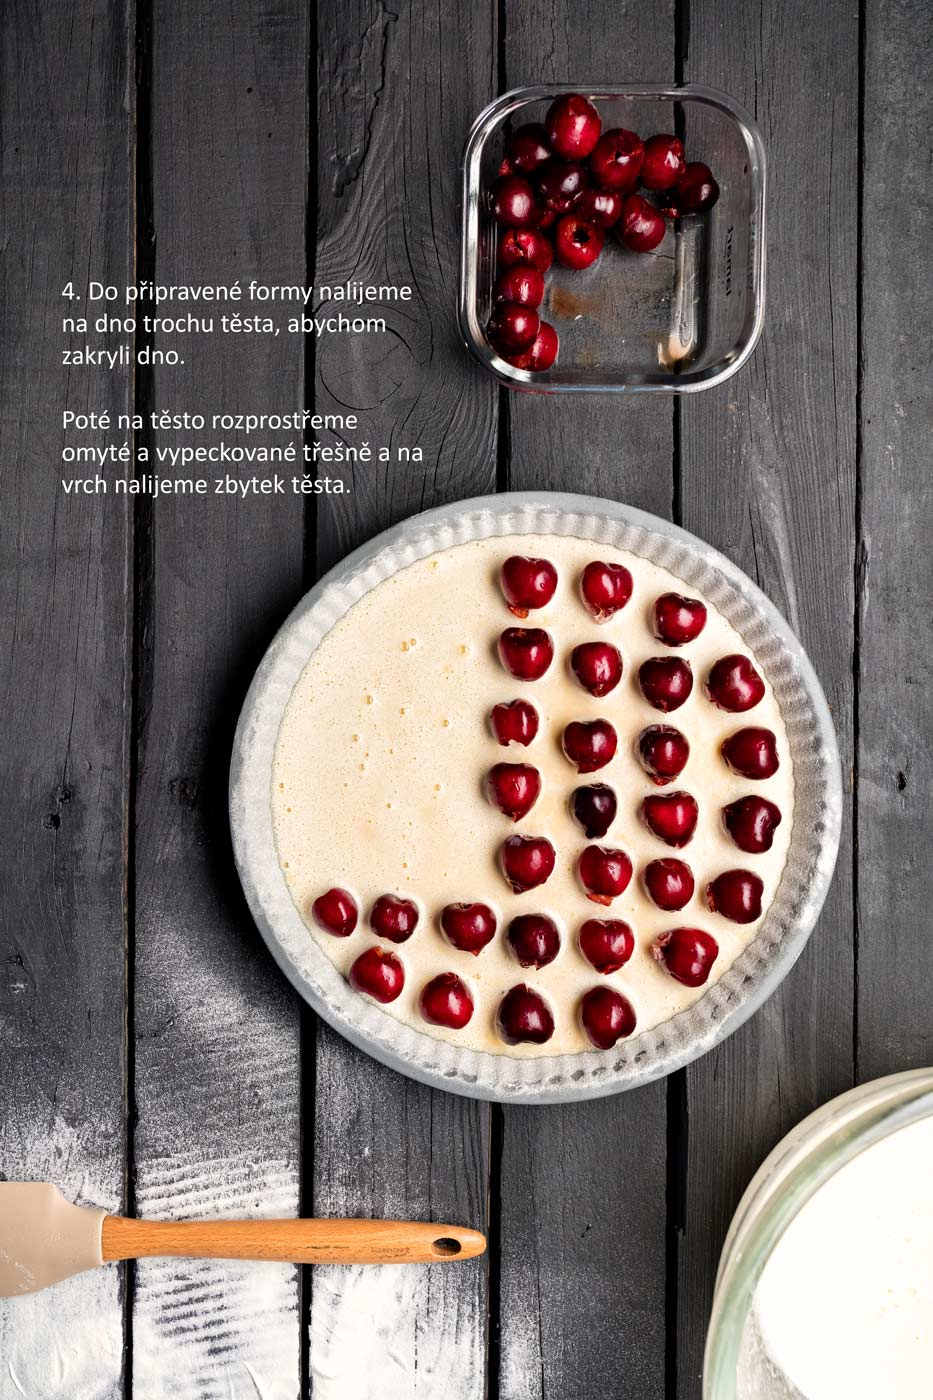 Step by step recipe image of cherry cake, promoting the Lamart brand cookware